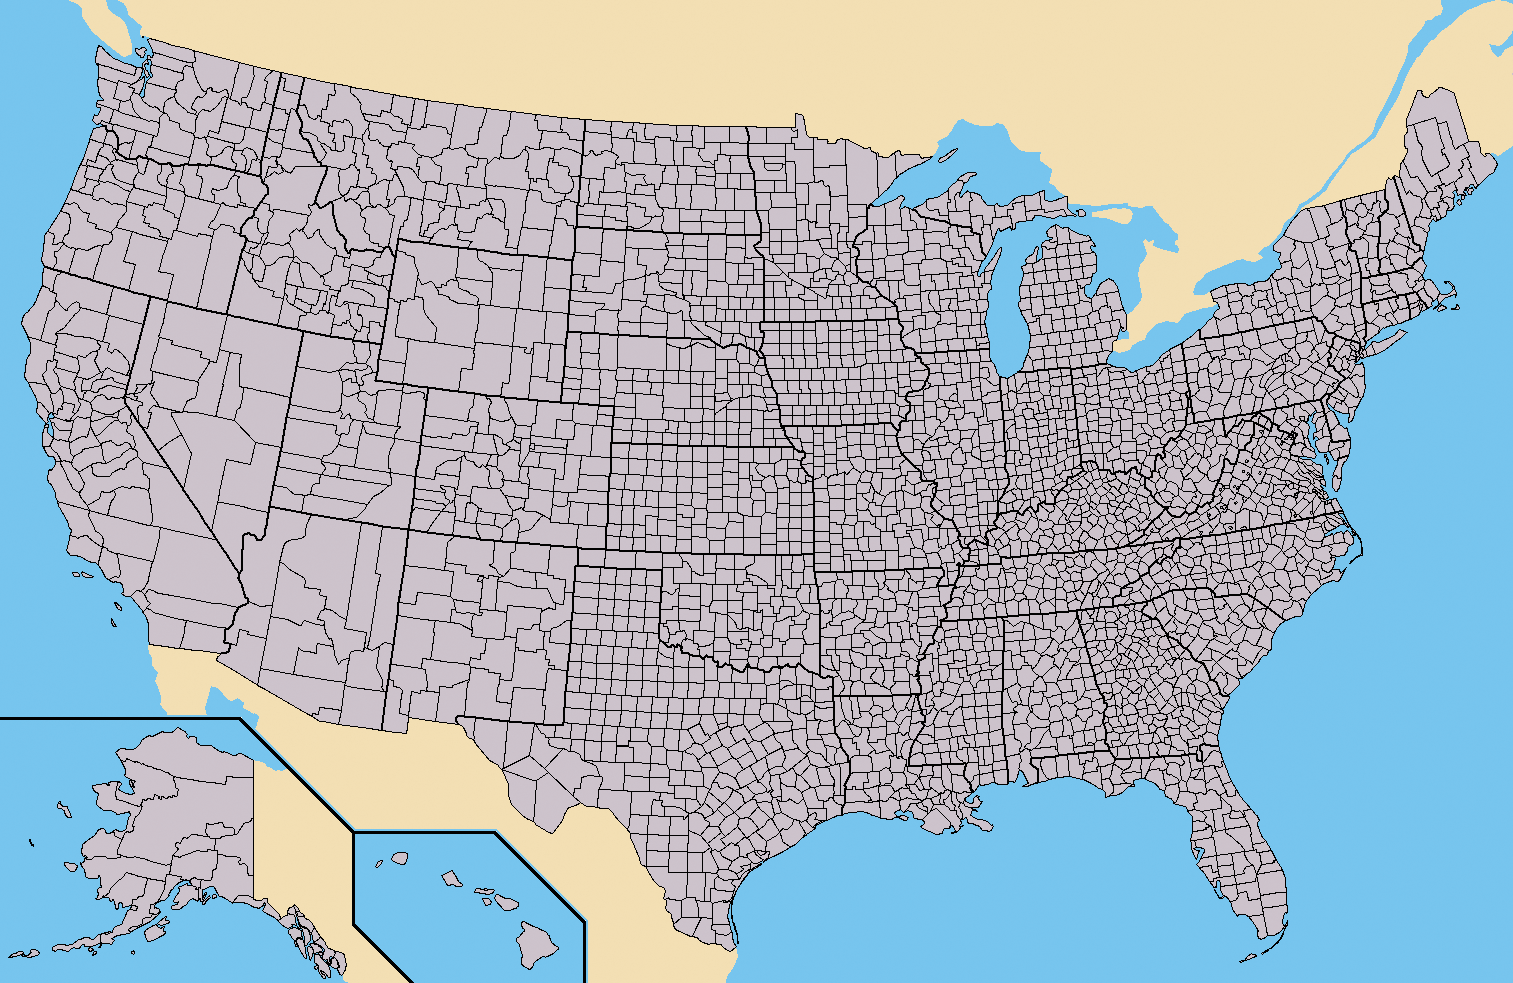 Map_of_USA_with_county_outlines.png